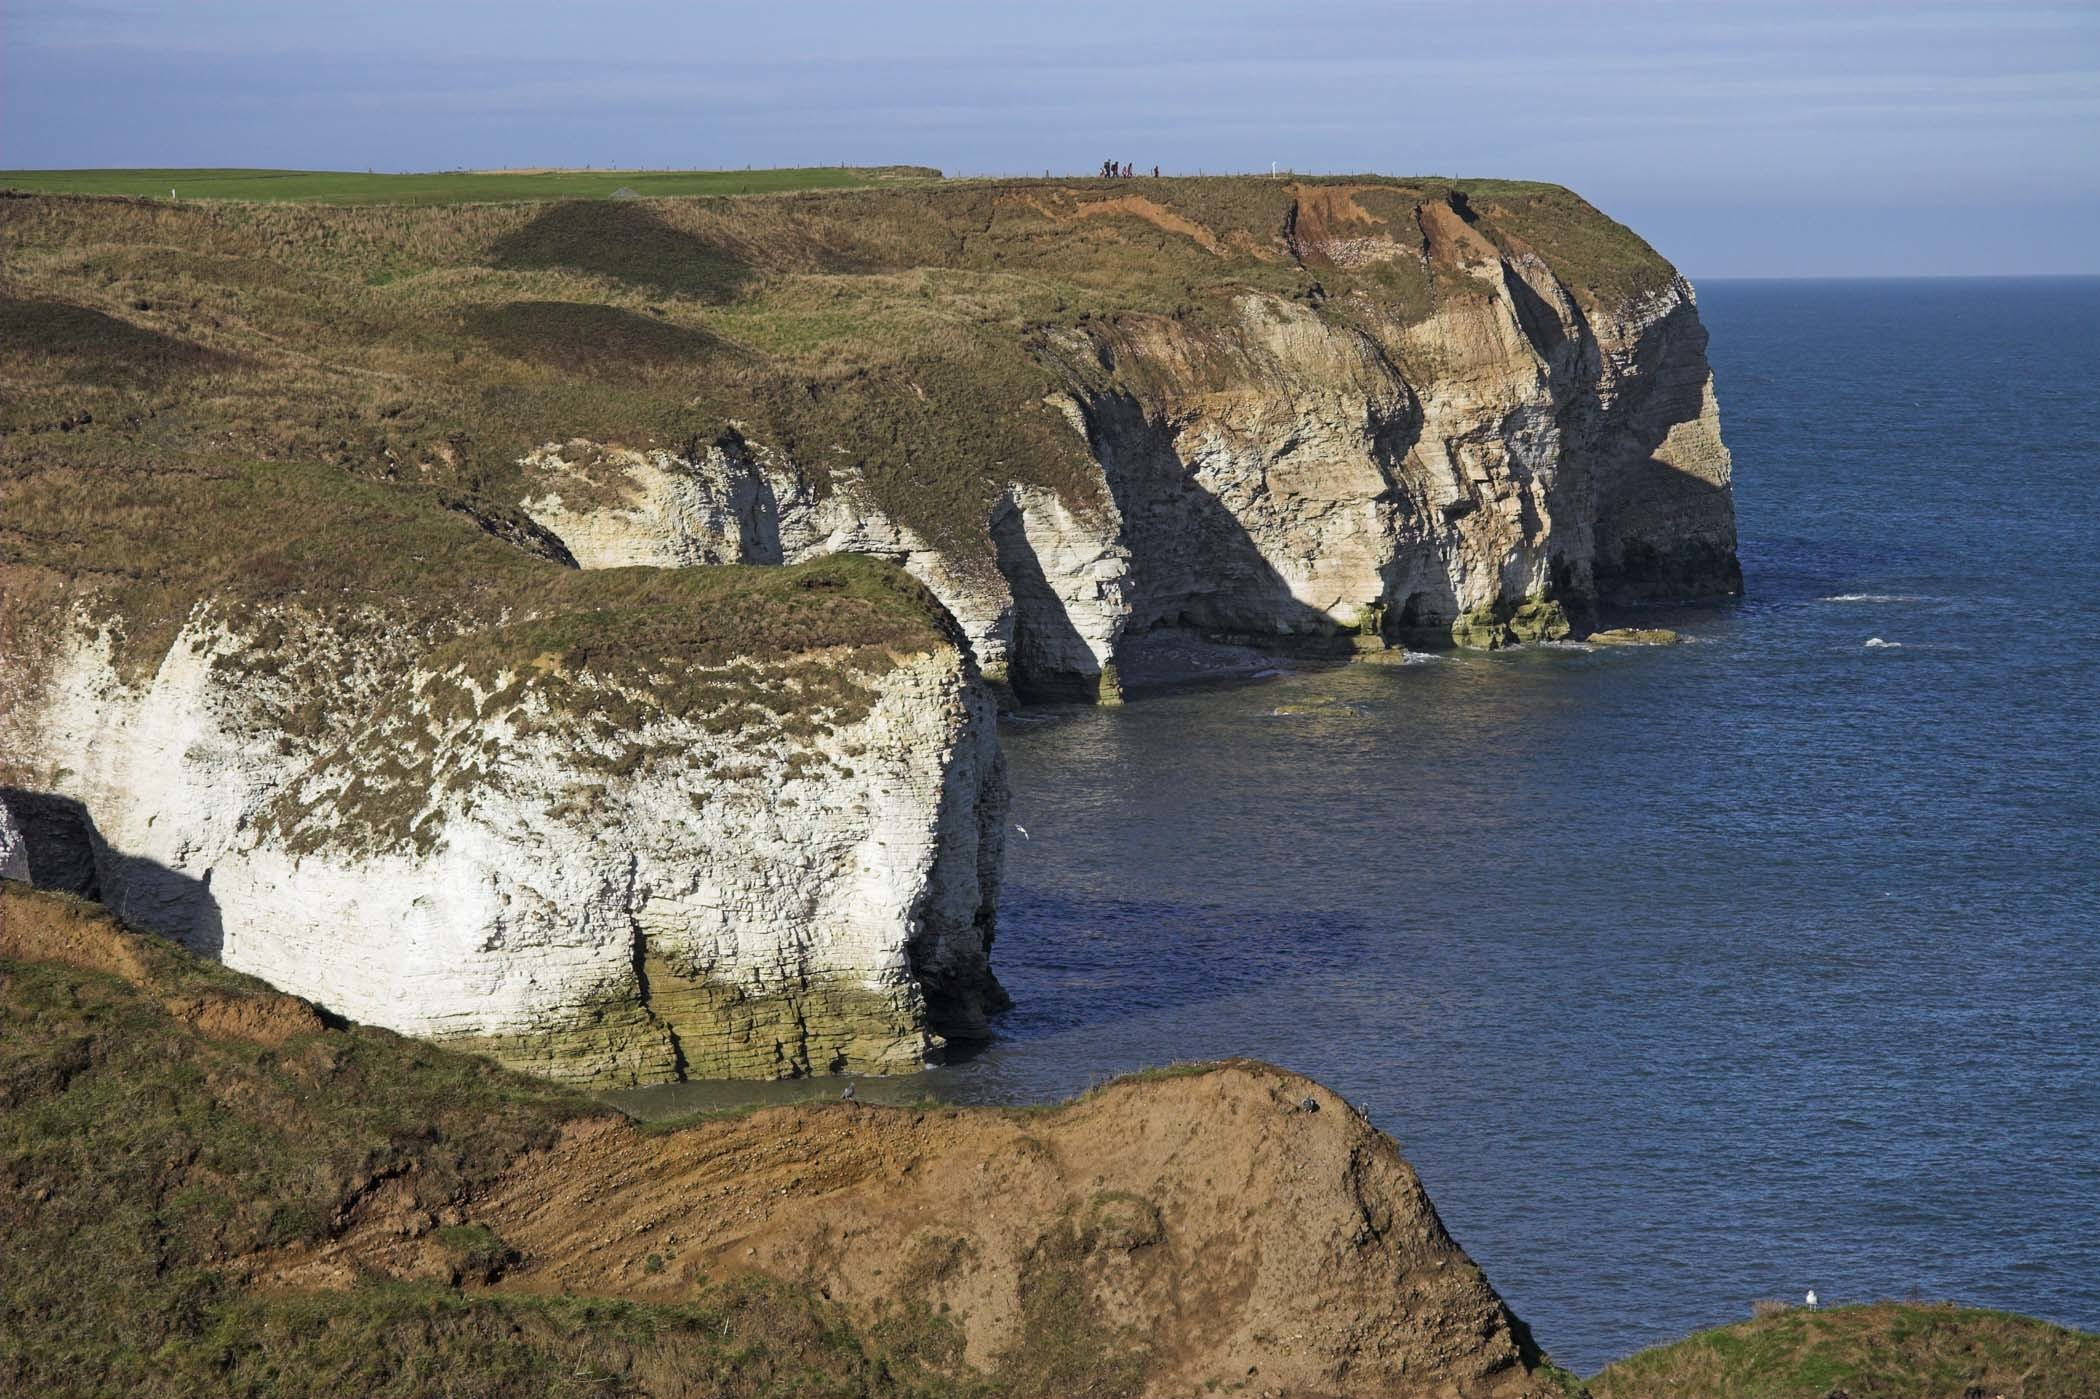 Chalk cliffs at Selwicks Bay, Flamborough Head, North Yorkshire, England